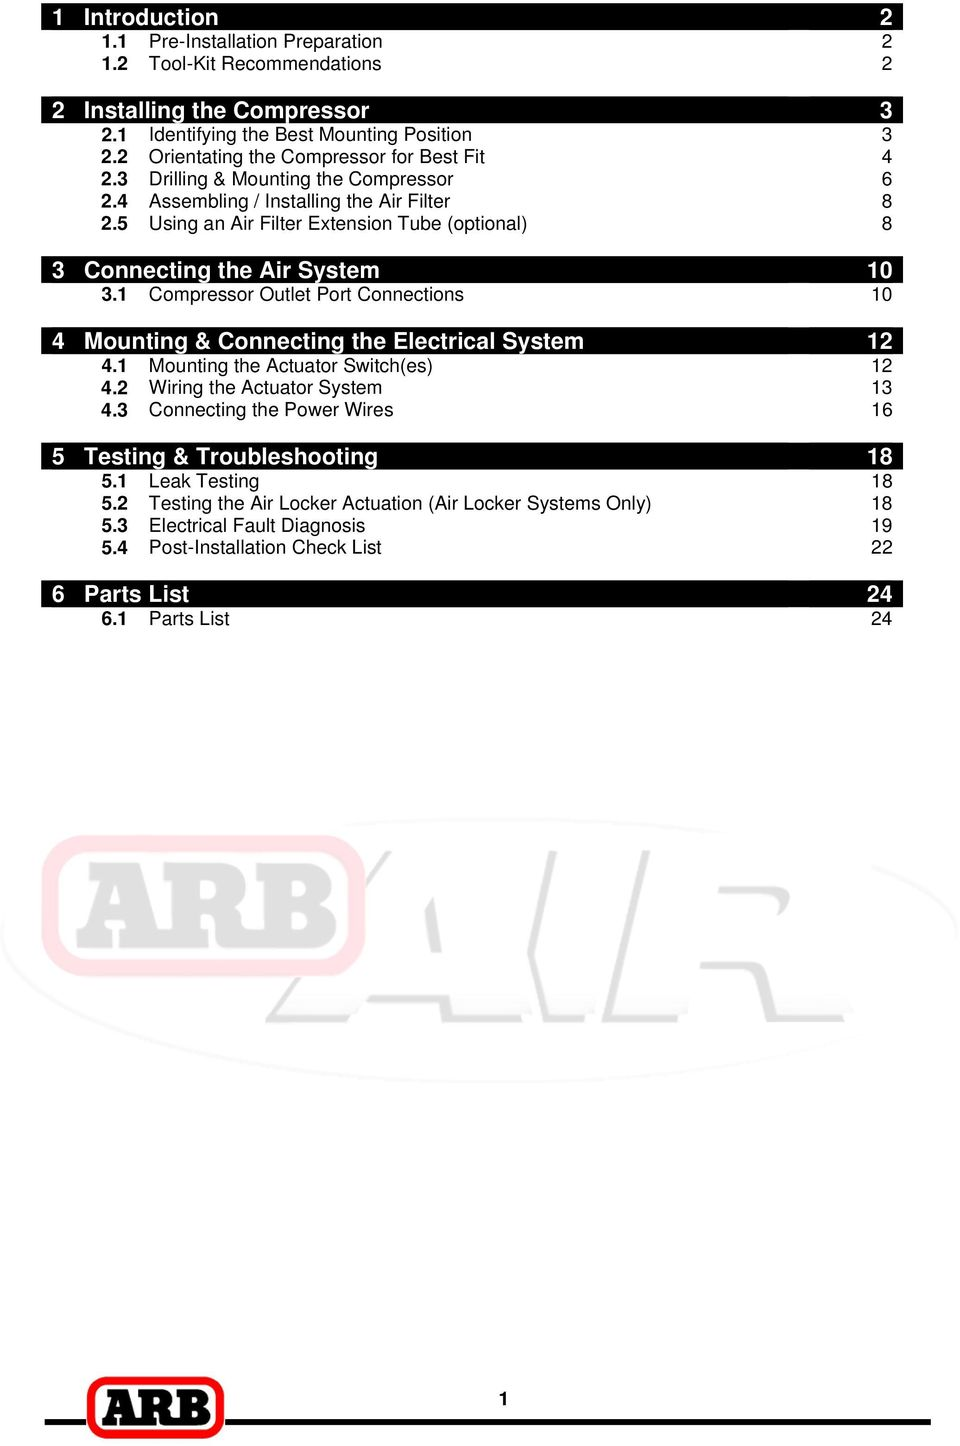 Installation Guide Ckmta12 24 Pdf Arb Air Locker Wiring Harness 5 Using An Filter Extension Tube Optional 8 3 Connecting The System